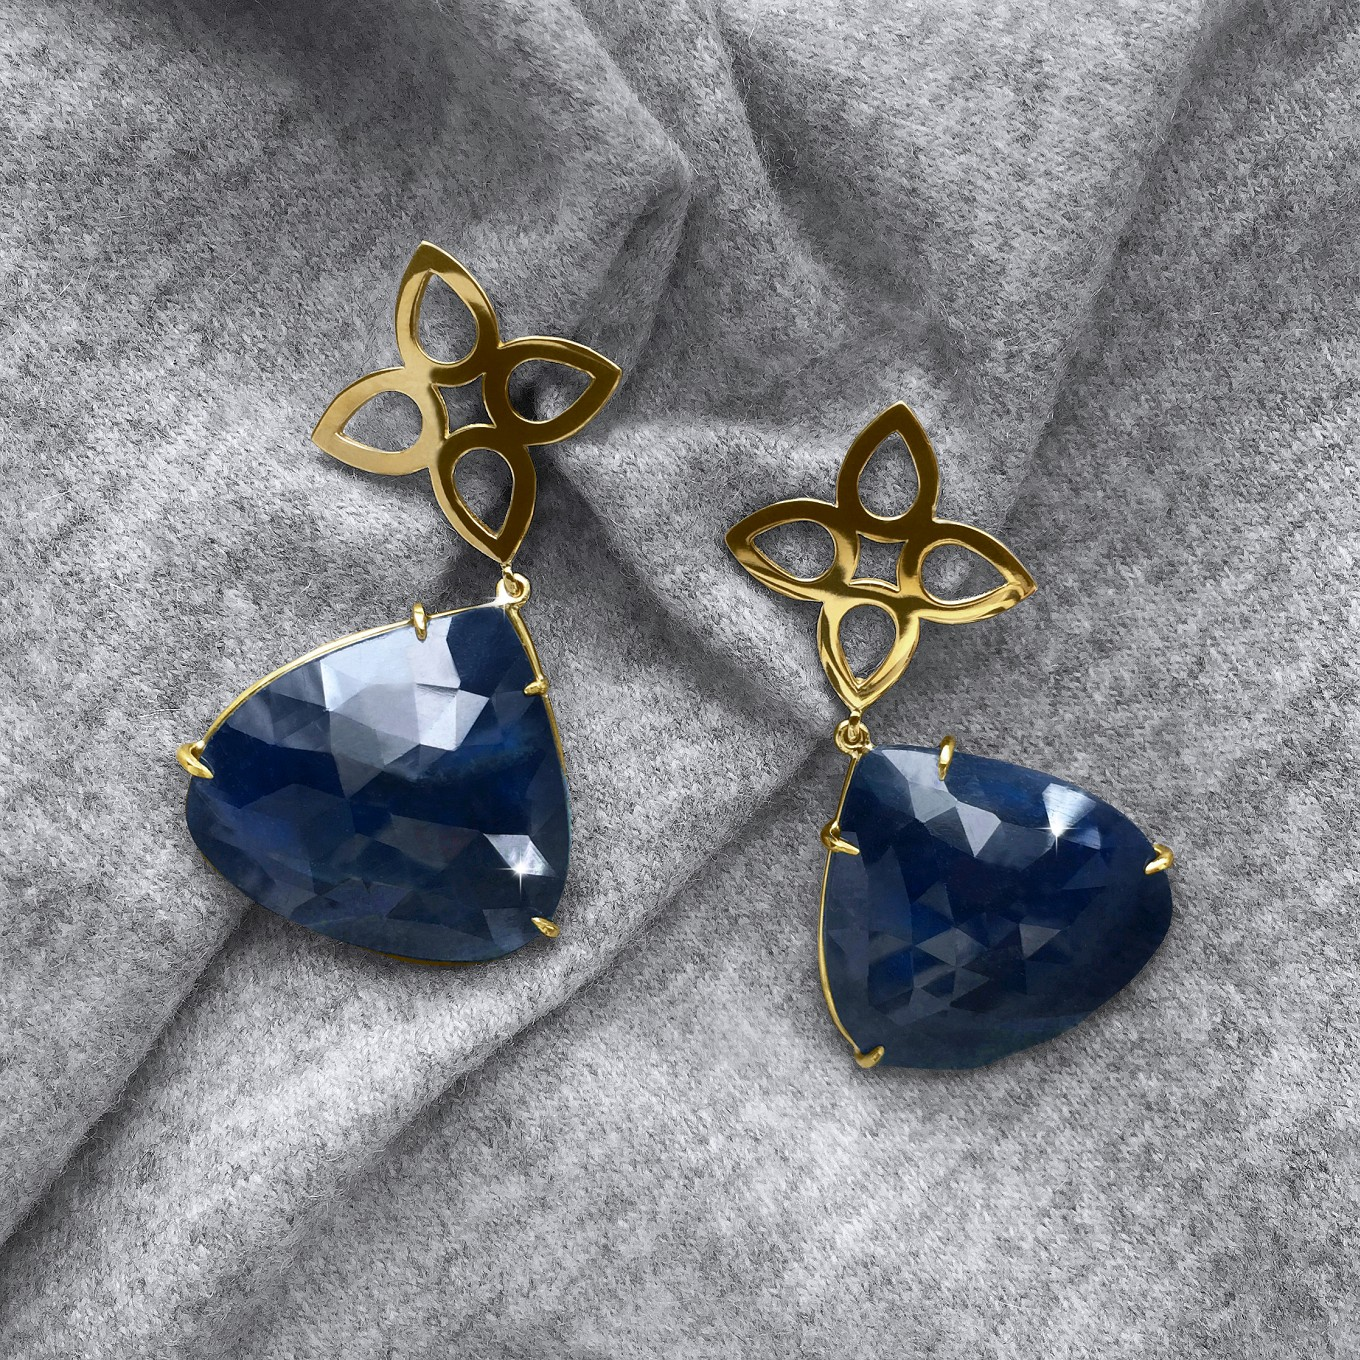 82.58CT ROSE CUT SAPPHIRE & WIRE SEVILLA MOTIF EARRINGS IN YELLOW GOLD